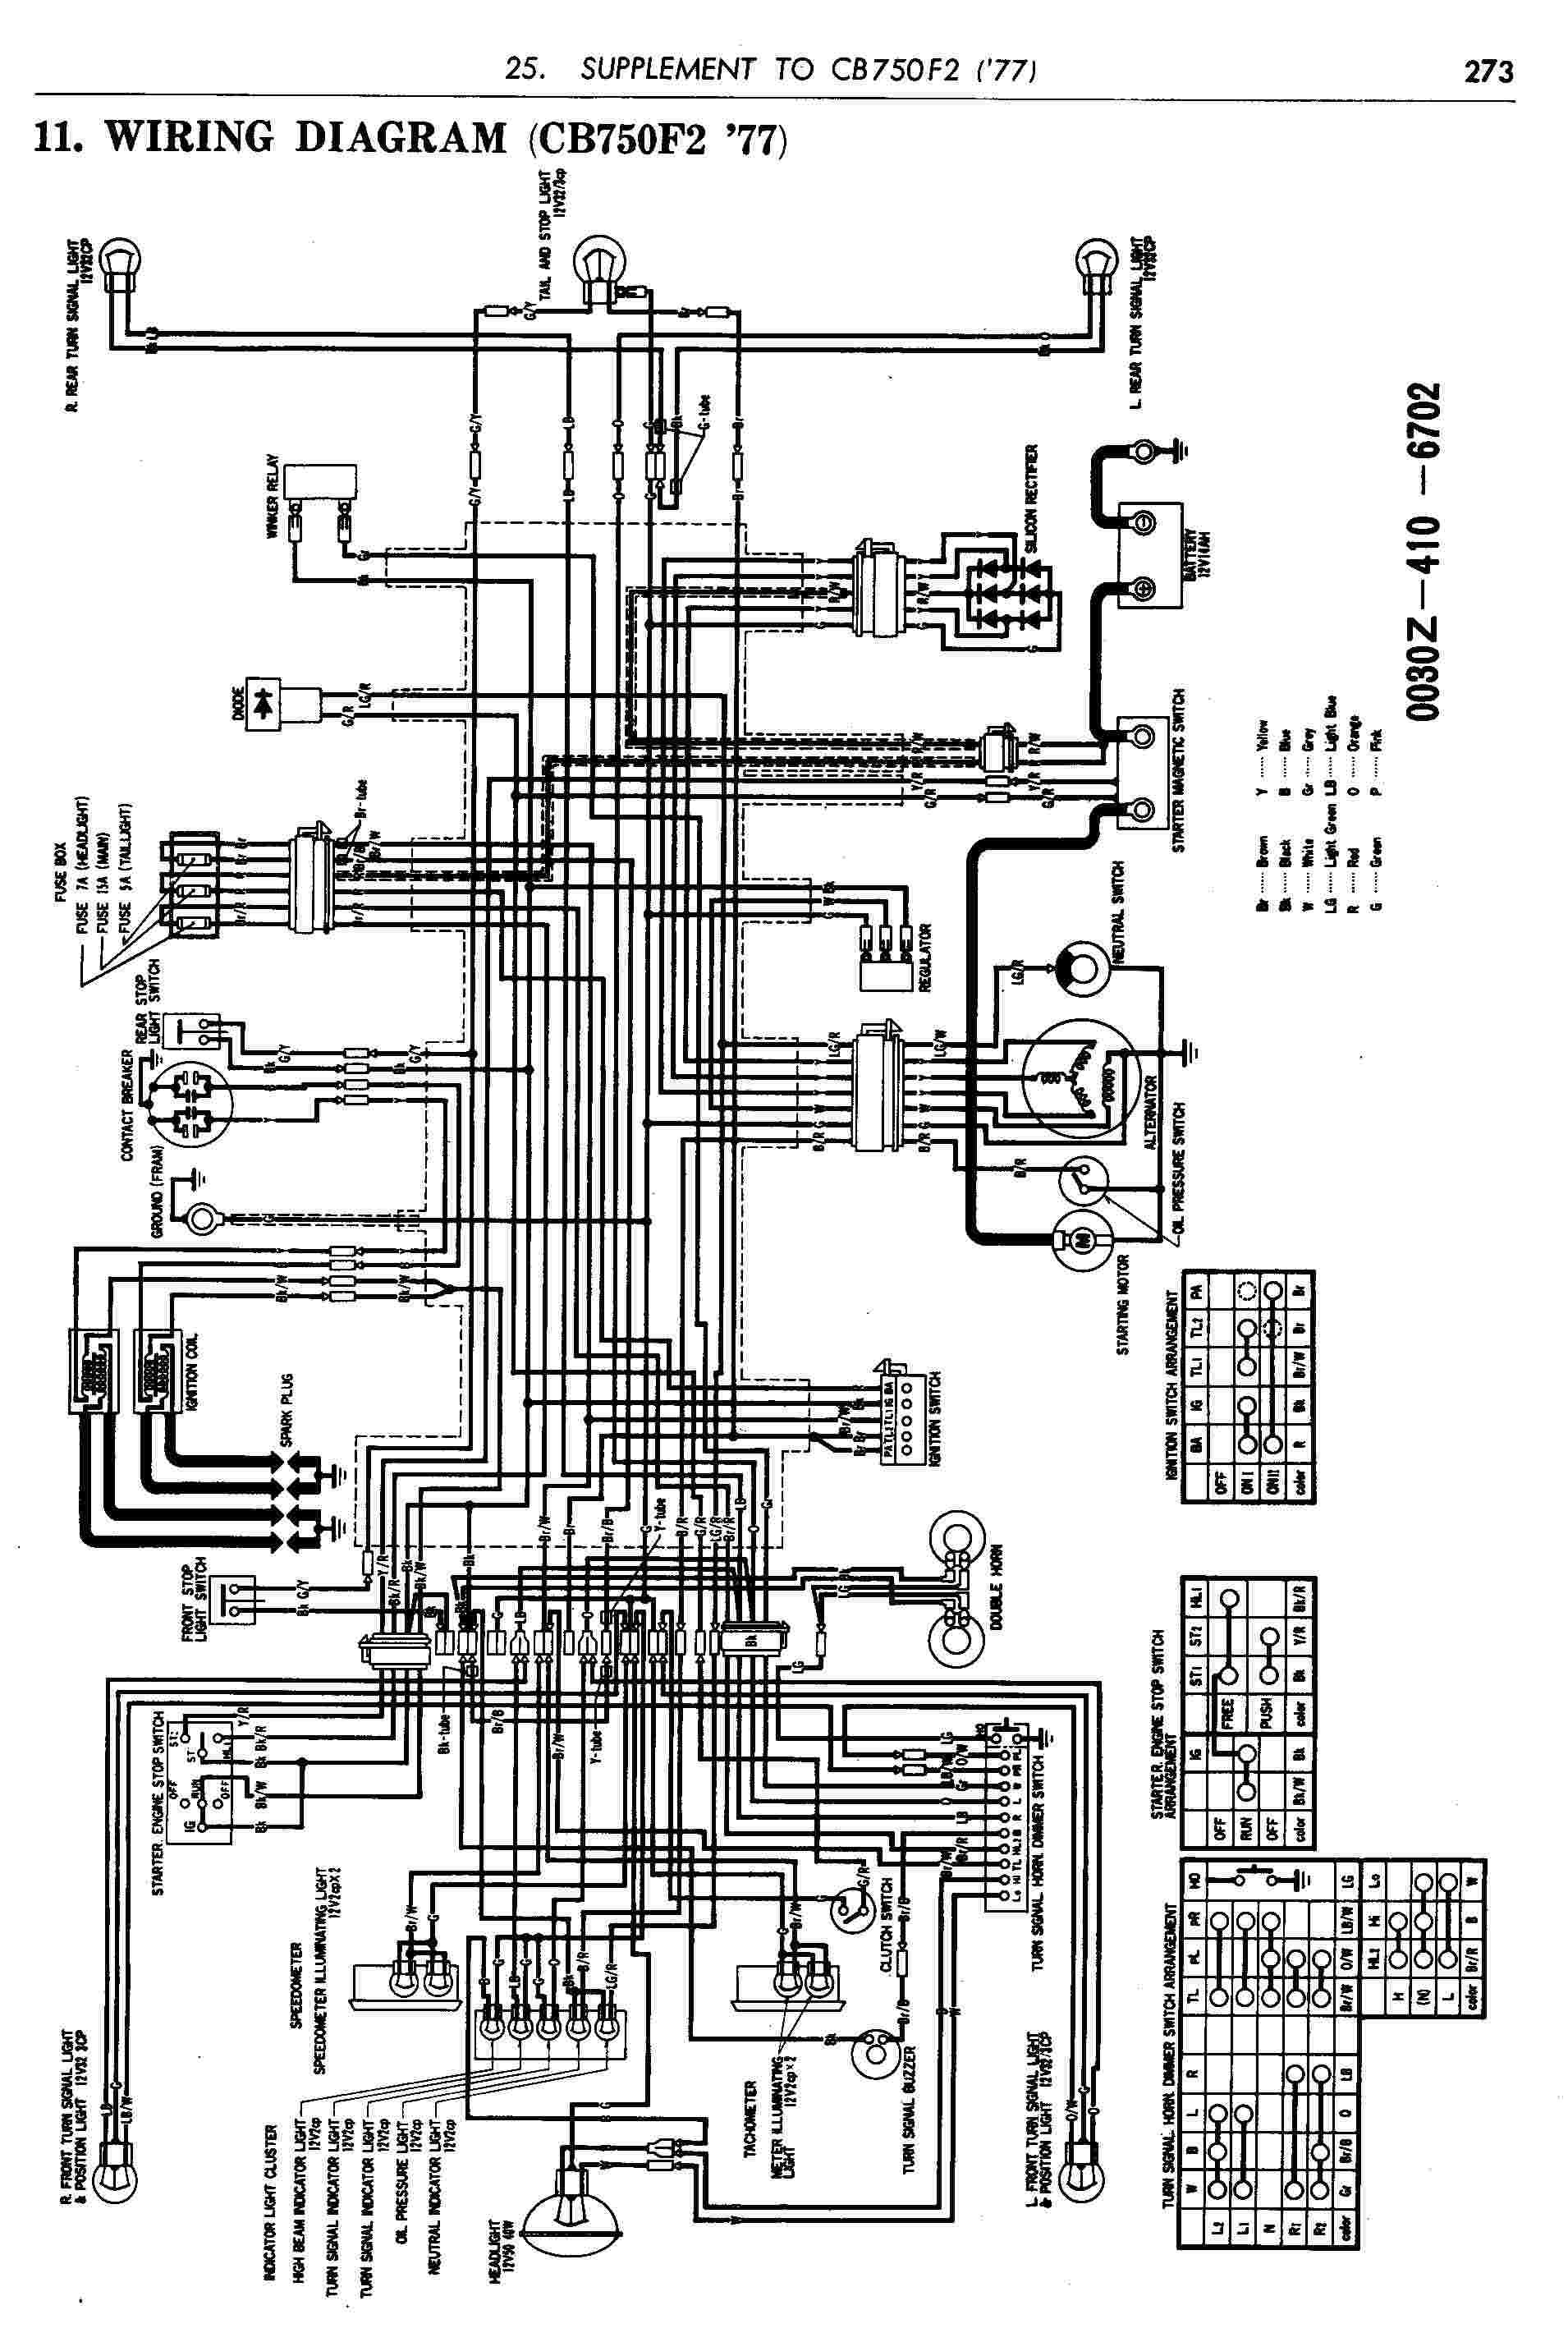 Cb 750 F2 Wiring Diagram Electrical Work Kawasaki Athlete Honda Cb750 Engine Cb750k2 My Rh Detoxicrecenze Com 1978